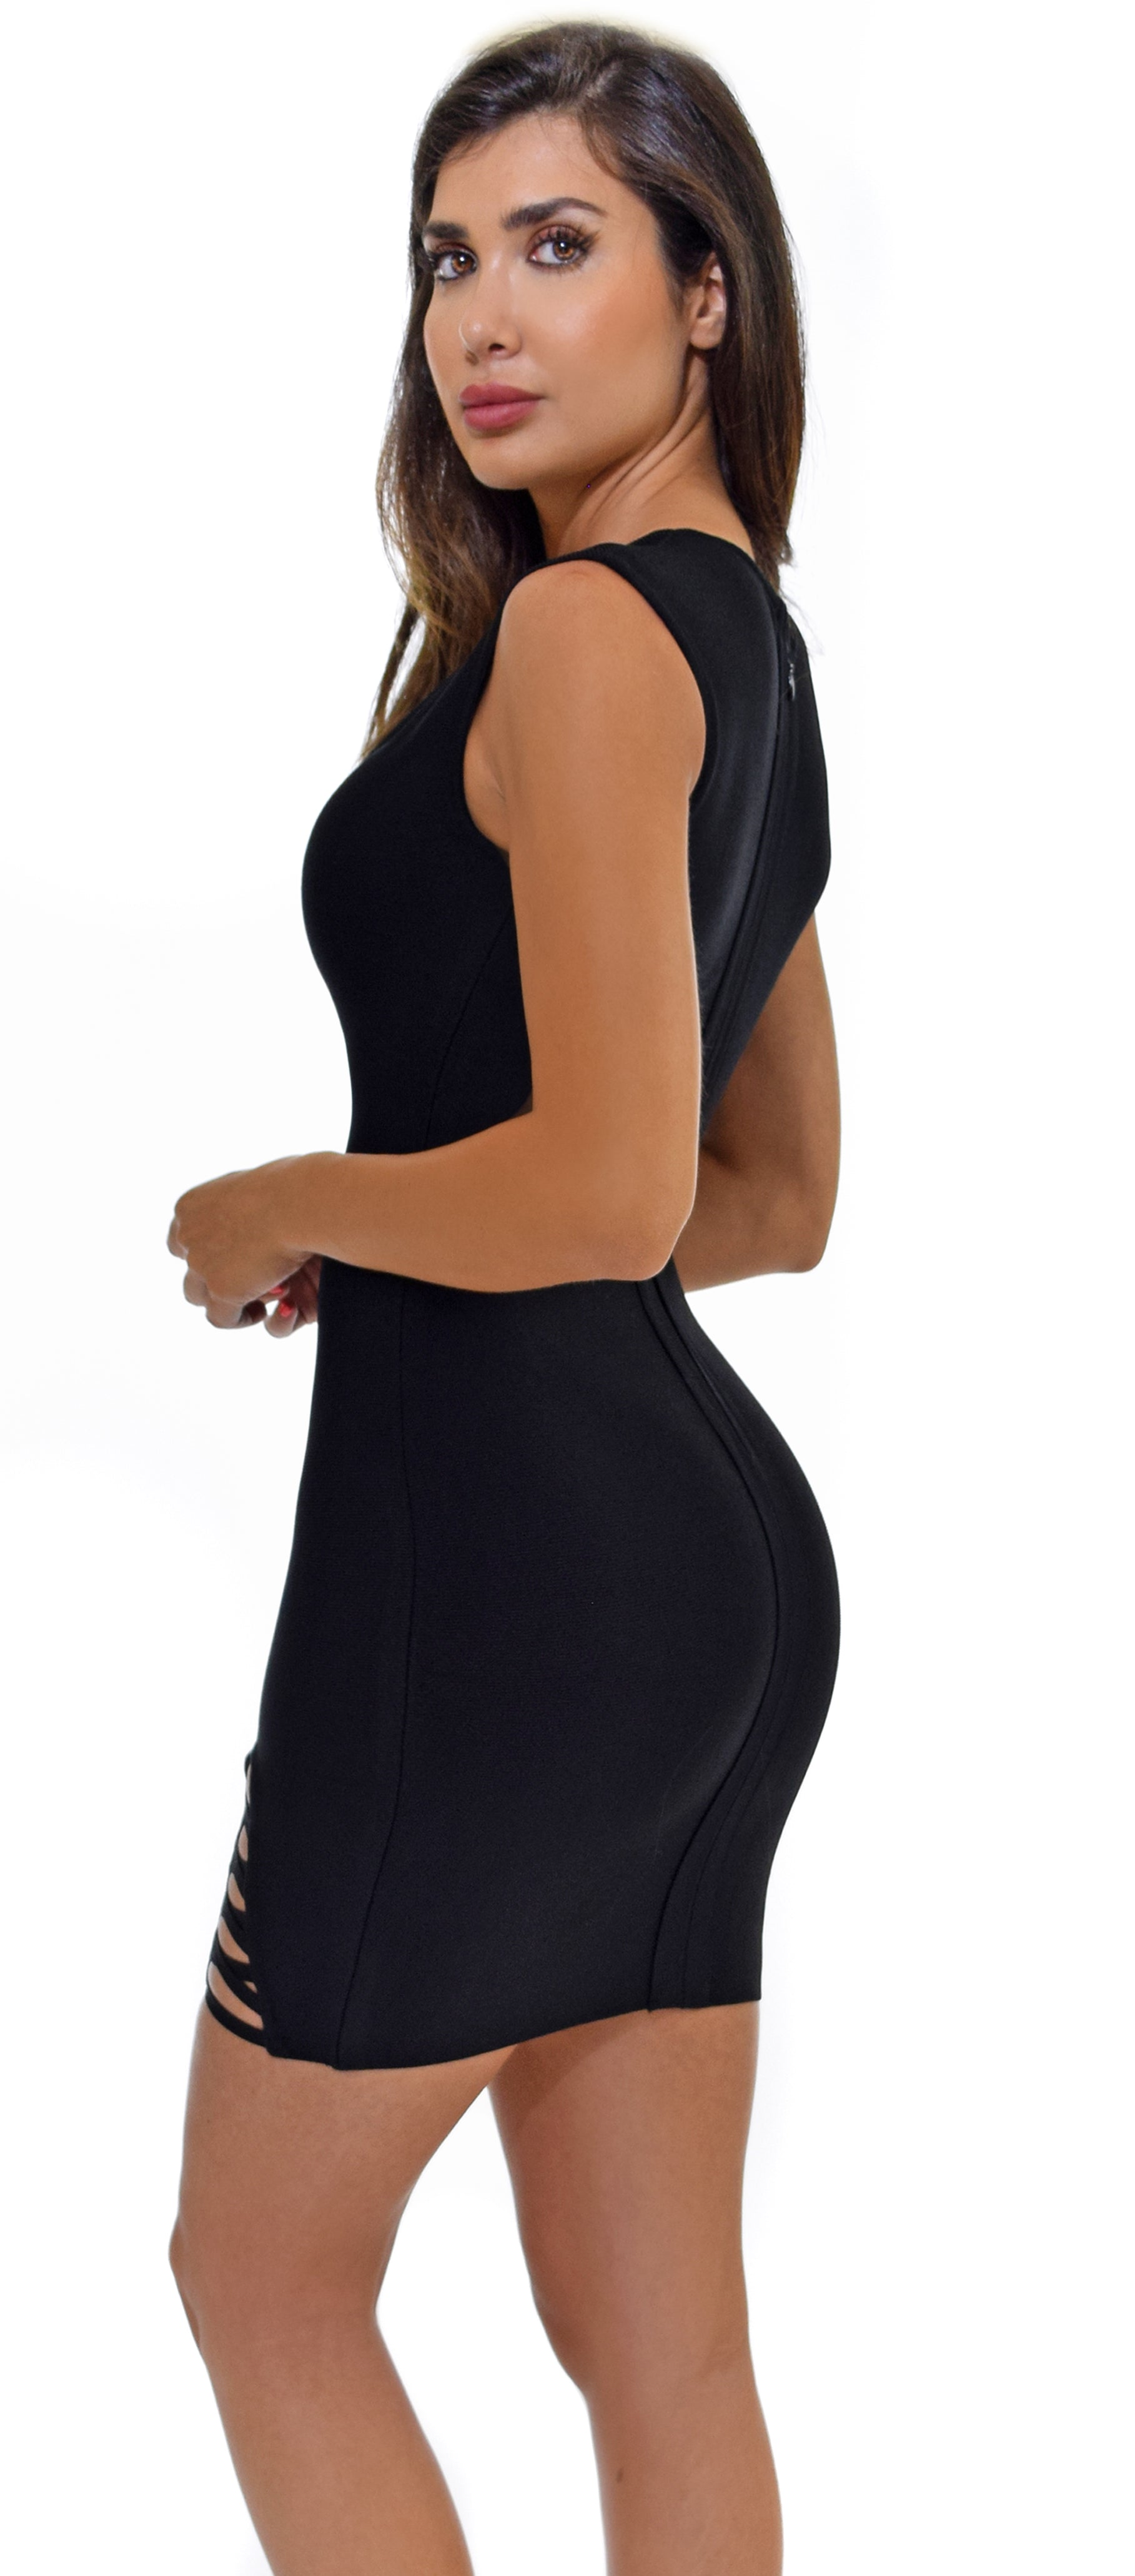 Chiara Black Bandage Dress - Emprada